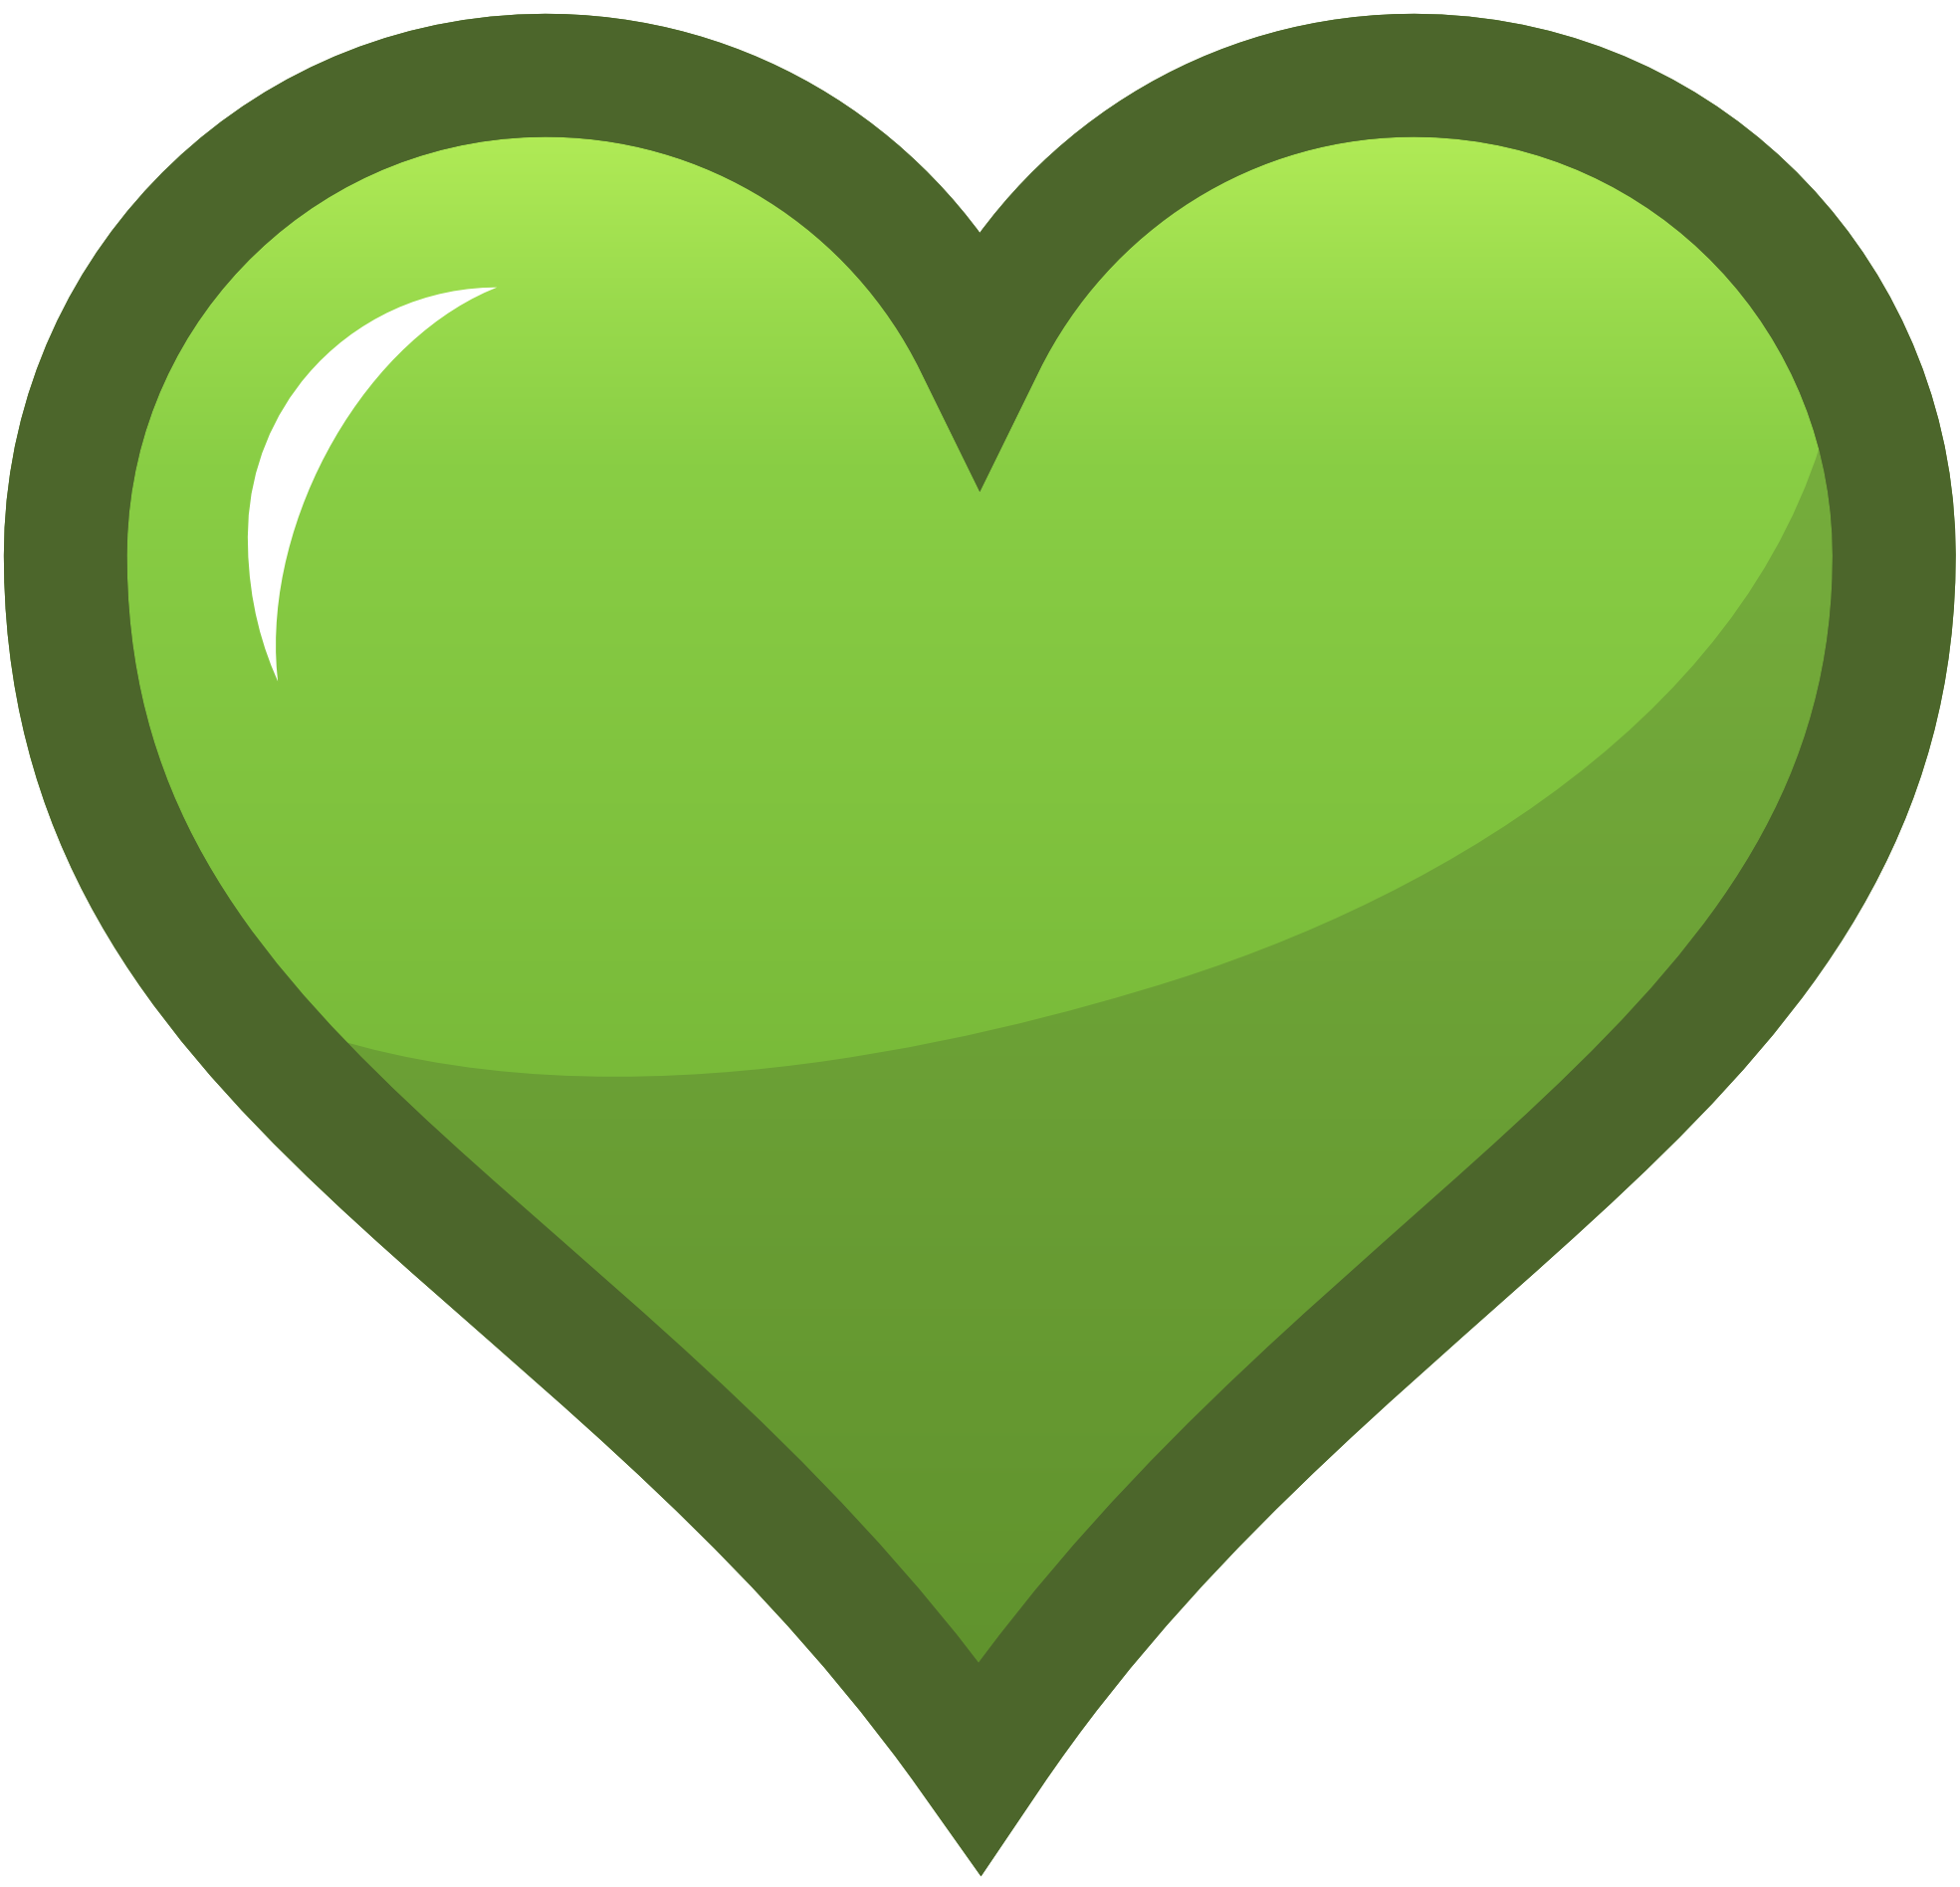 Green hearts clipart clipart freeuse download Green hearts clipart - ClipartFest clipart freeuse download